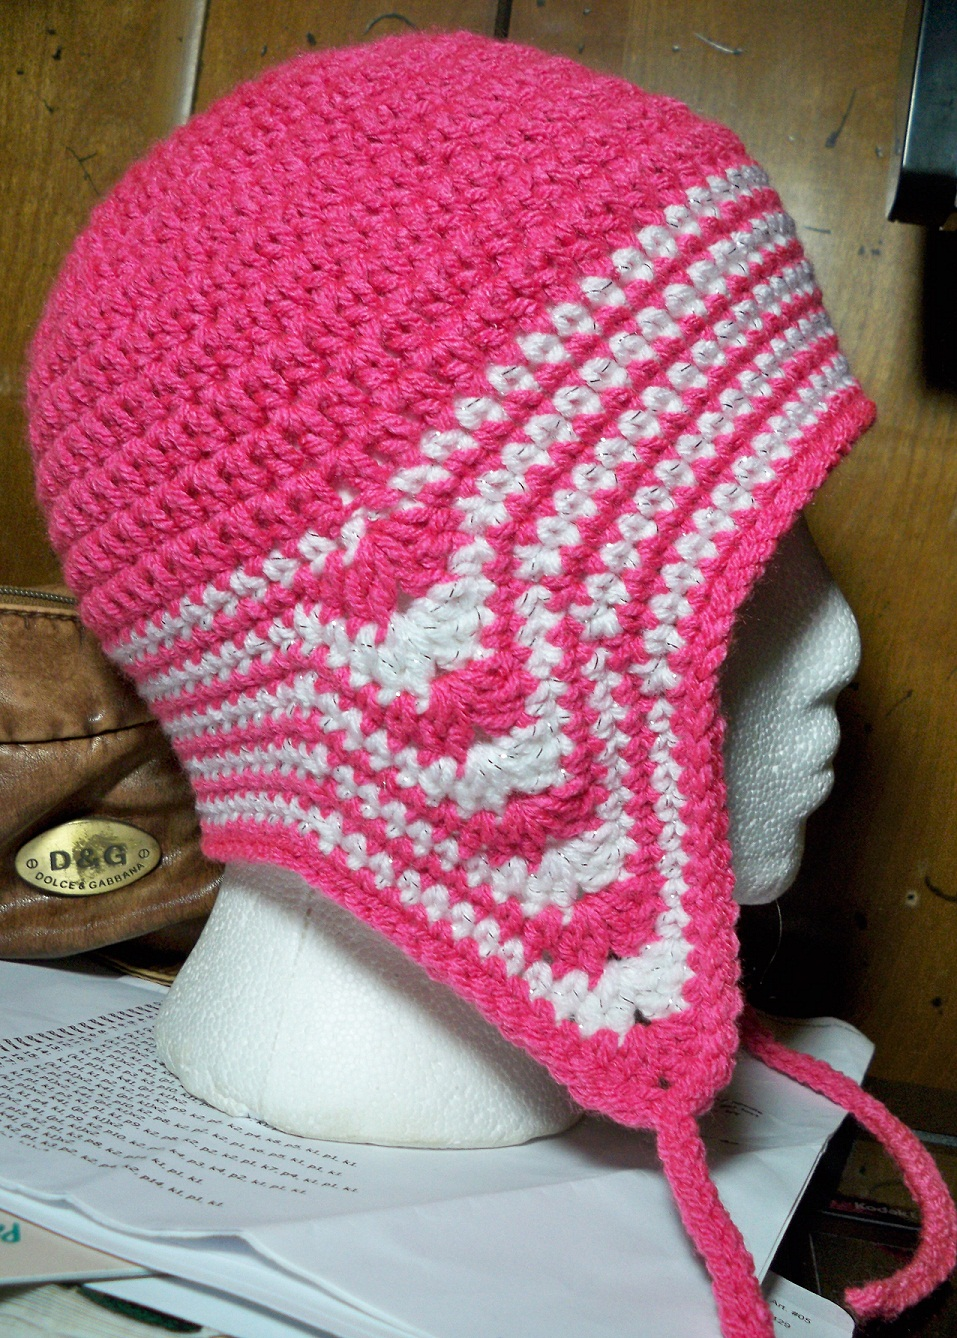 Crochet Patterns Hat With Ear Flaps : JR Crochet Designs: 2 New Designs just in time for Christmas